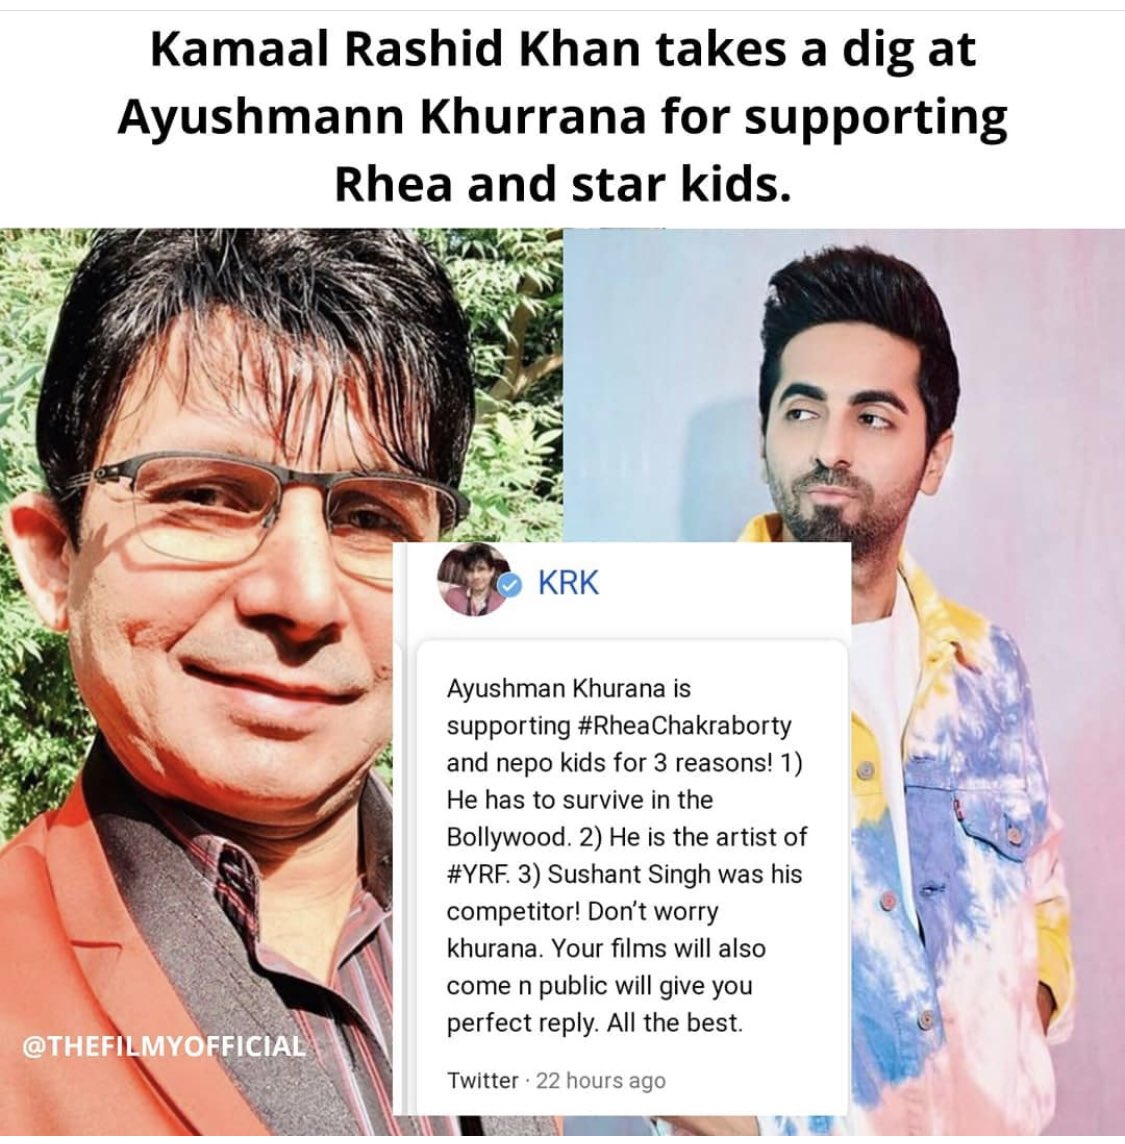 @ayushmannk SHAME ON YOU..!! #Snake How could you not be on & support the side of Justice. I just hope they don't repeat #SSRMurderCase on you some day. Greed, Money, Power and Fame made you choose wrong path. #BoycottBollywood #BeHumanNotASlaveOfBollywood #J4SSR @AashishVashist7pic.twitter.com/Pr3kKLbKmP